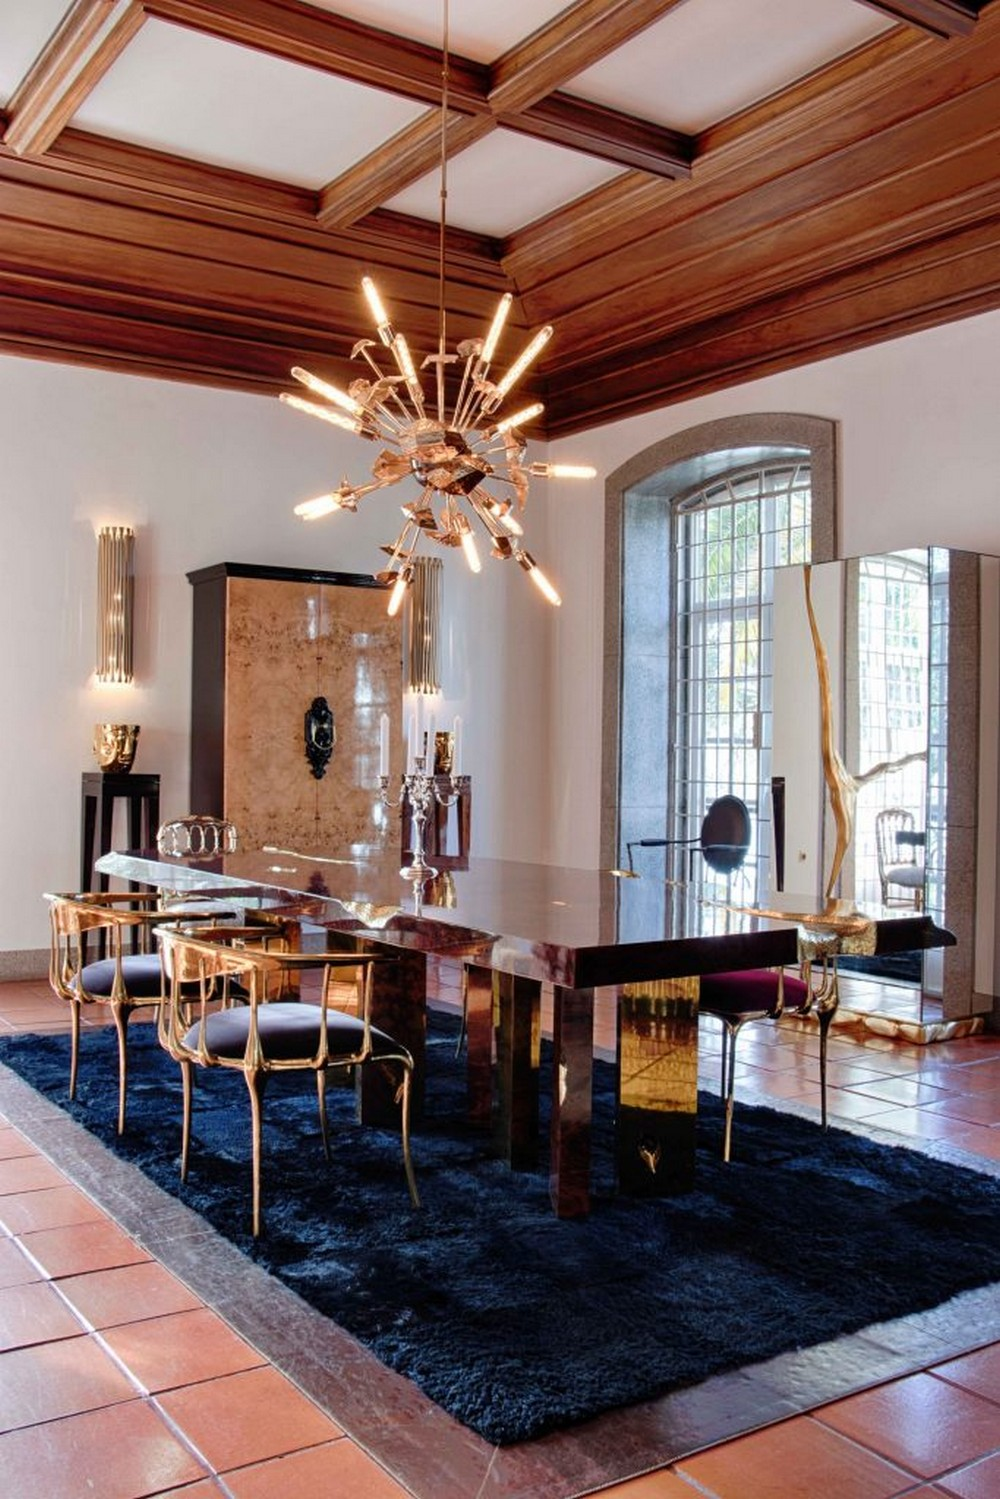 Enter in the World of Luxury Craftsmanship and Bespoke Furniture bespoke furniture Enter in the World of Luxury Craftsmanship and Bespoke Furniture Enter in the World of Luxury Craftsmanship and Bespoke Furniture 7